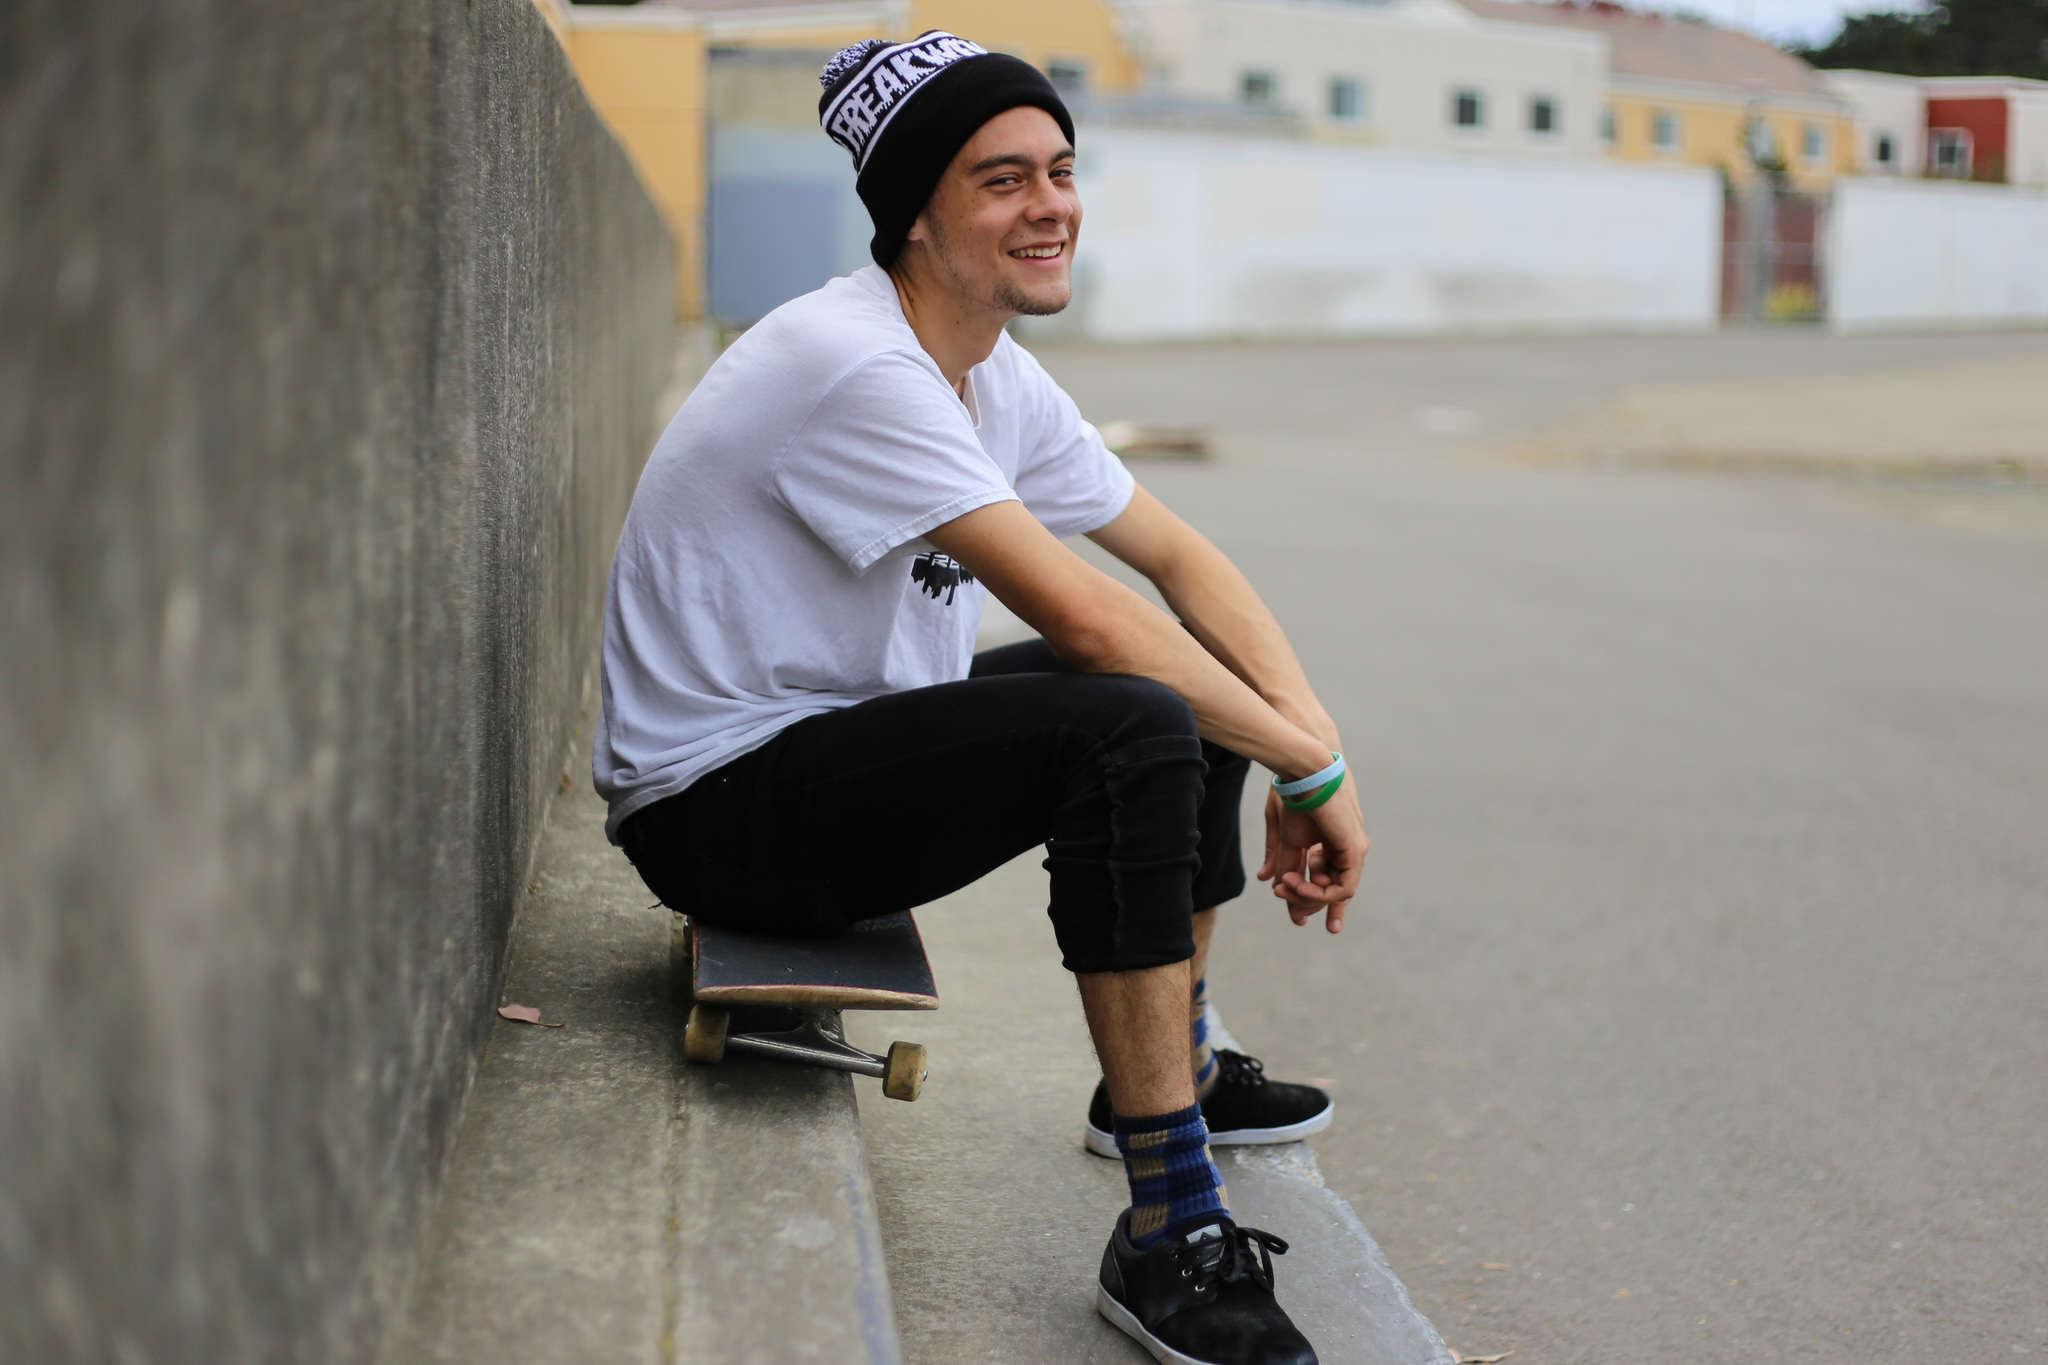 Cinema student rolls his way to success with skateboard brand